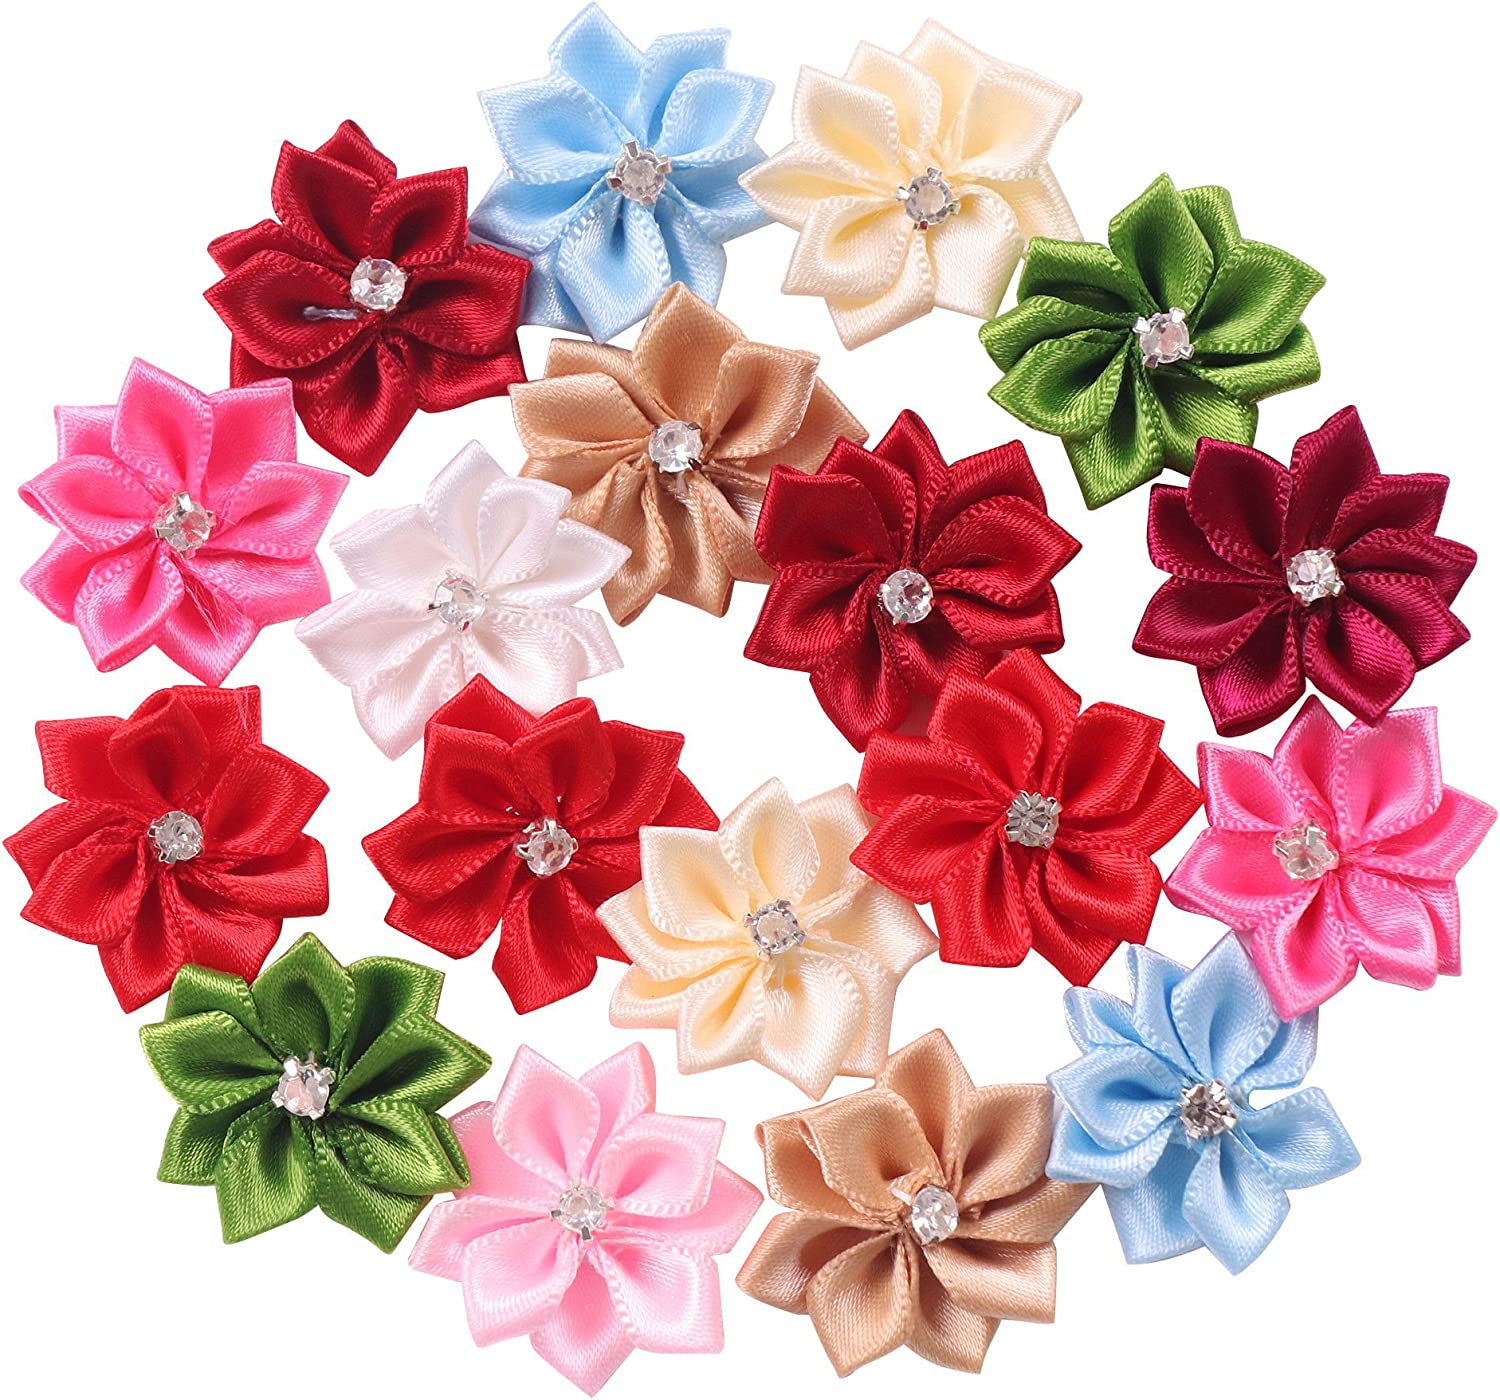 PACK 2 ROSE BASKET EMBELLISHMENTS FOR CARDS AND CRAFTS ANNIVERSARY